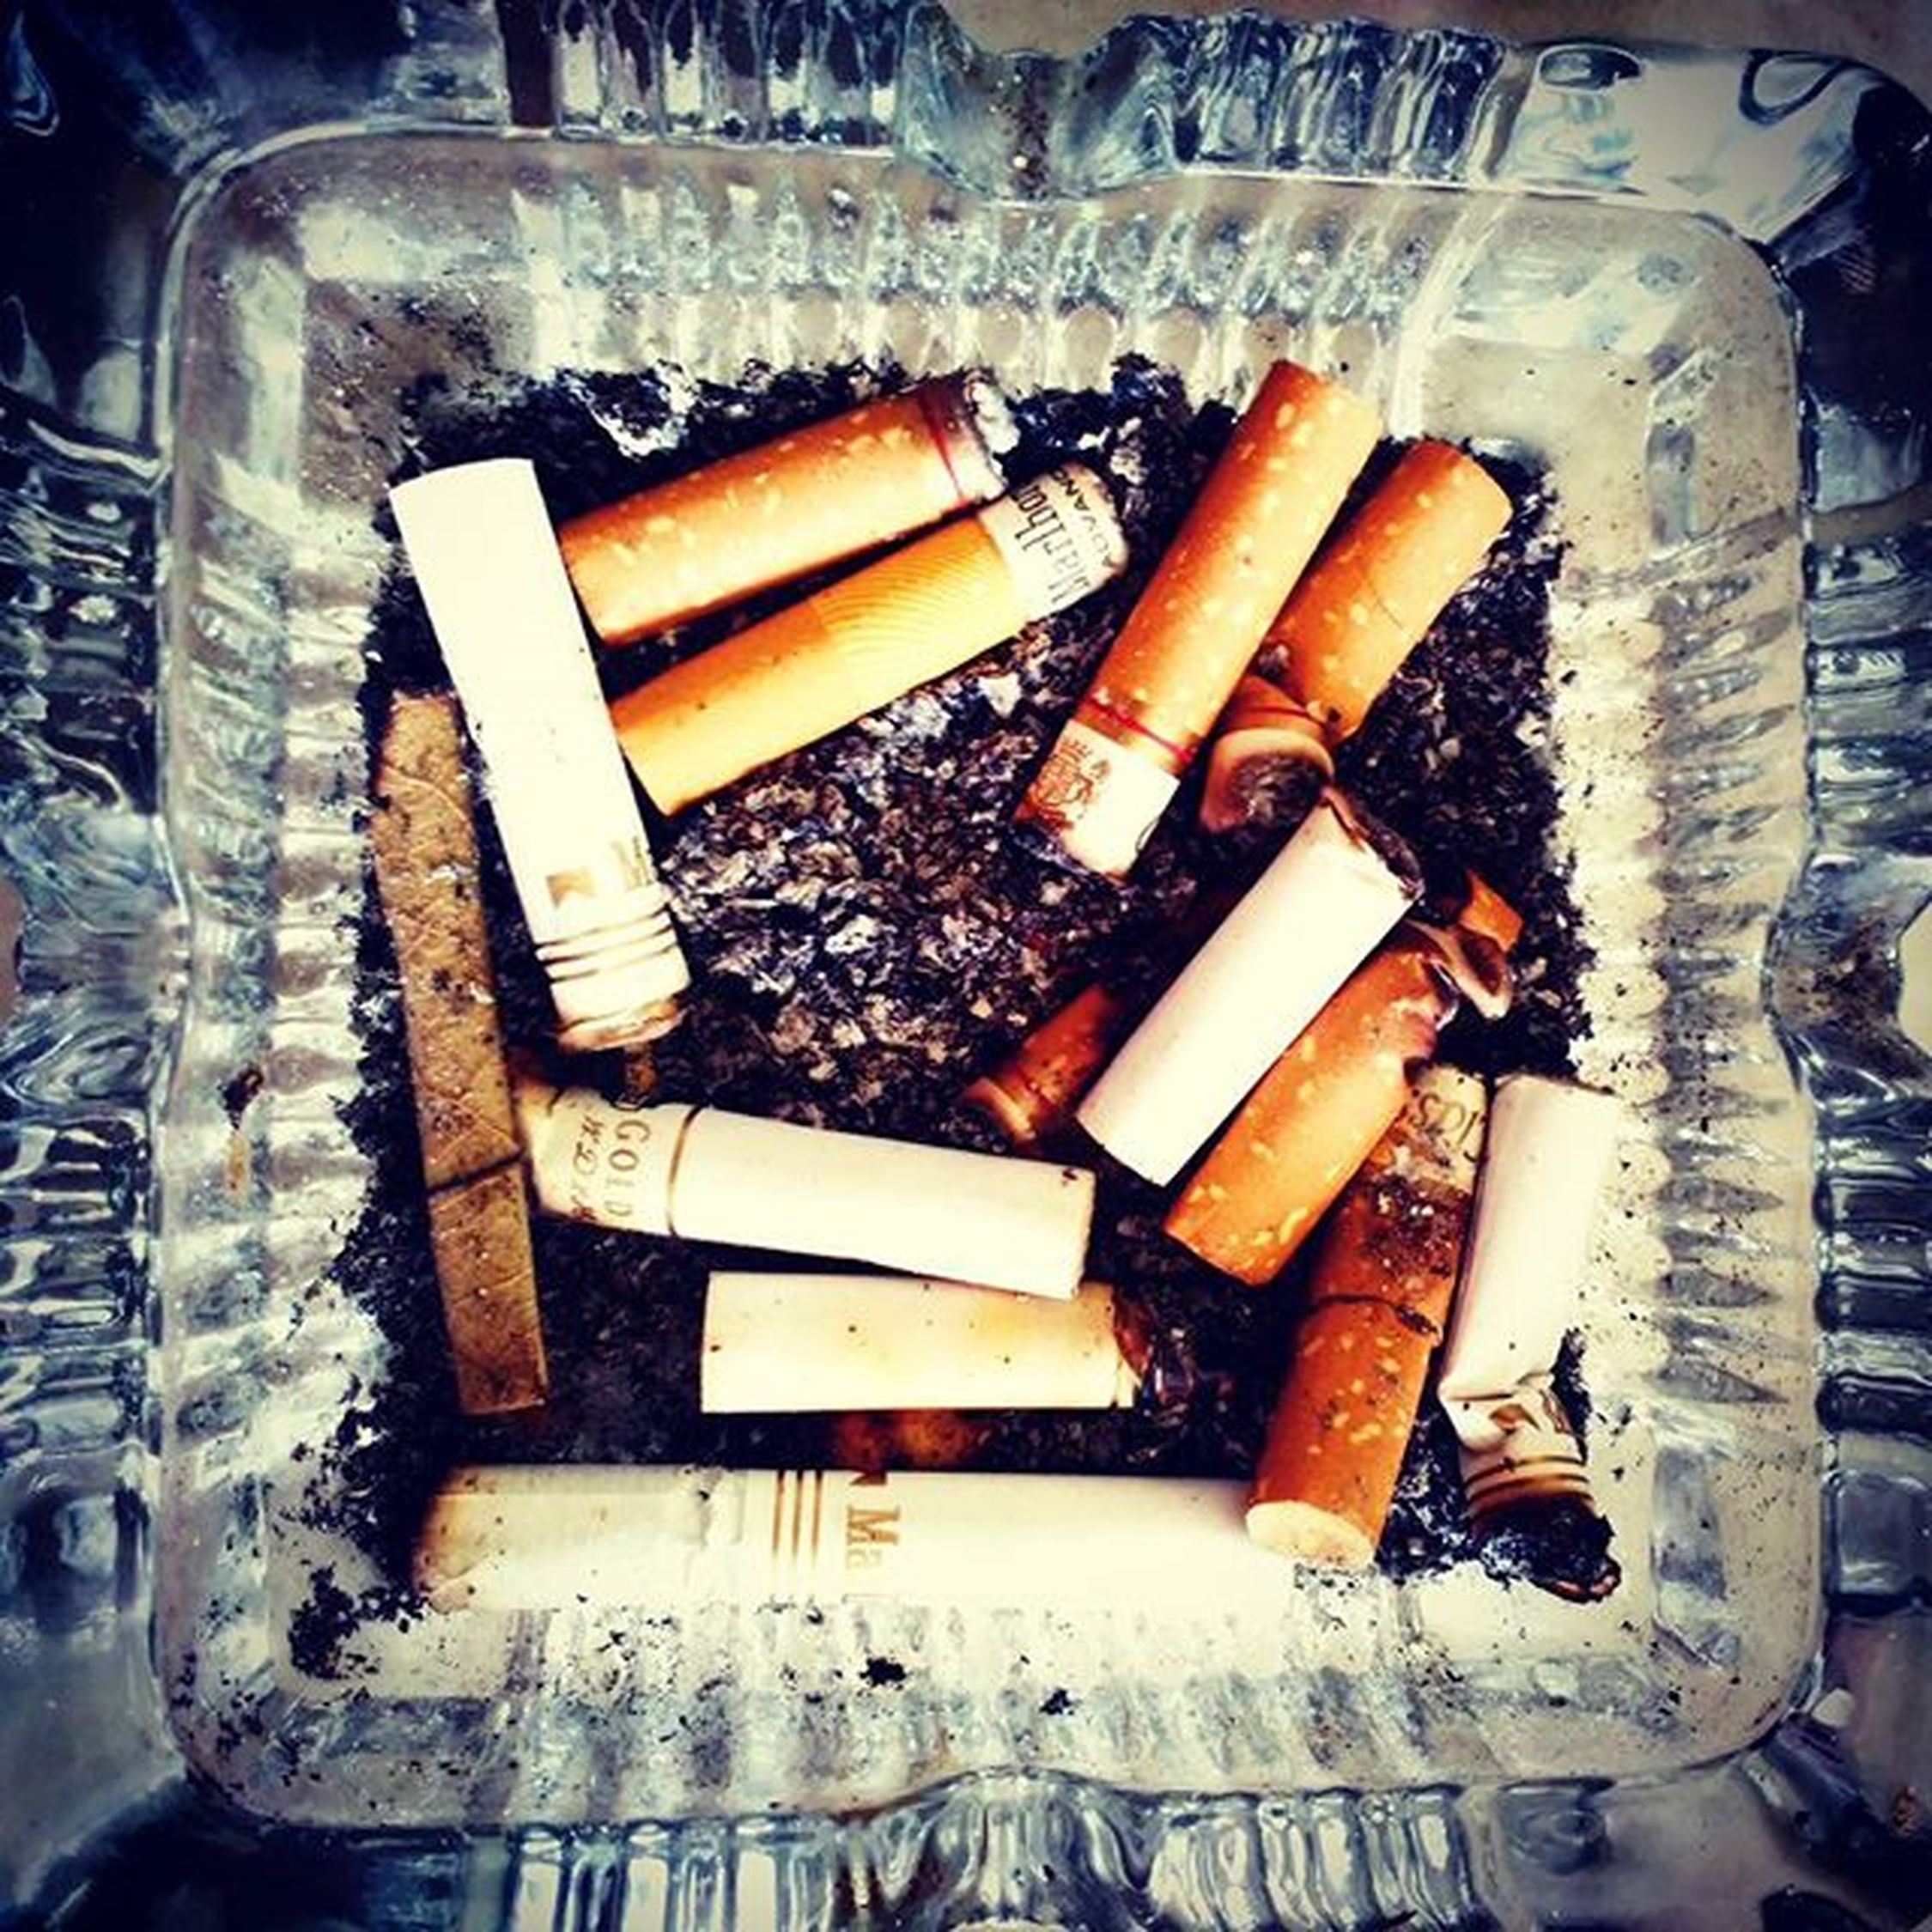 The Sunday Afternoon! TobaccoCausesCancer P.S:I Don't Smoke..